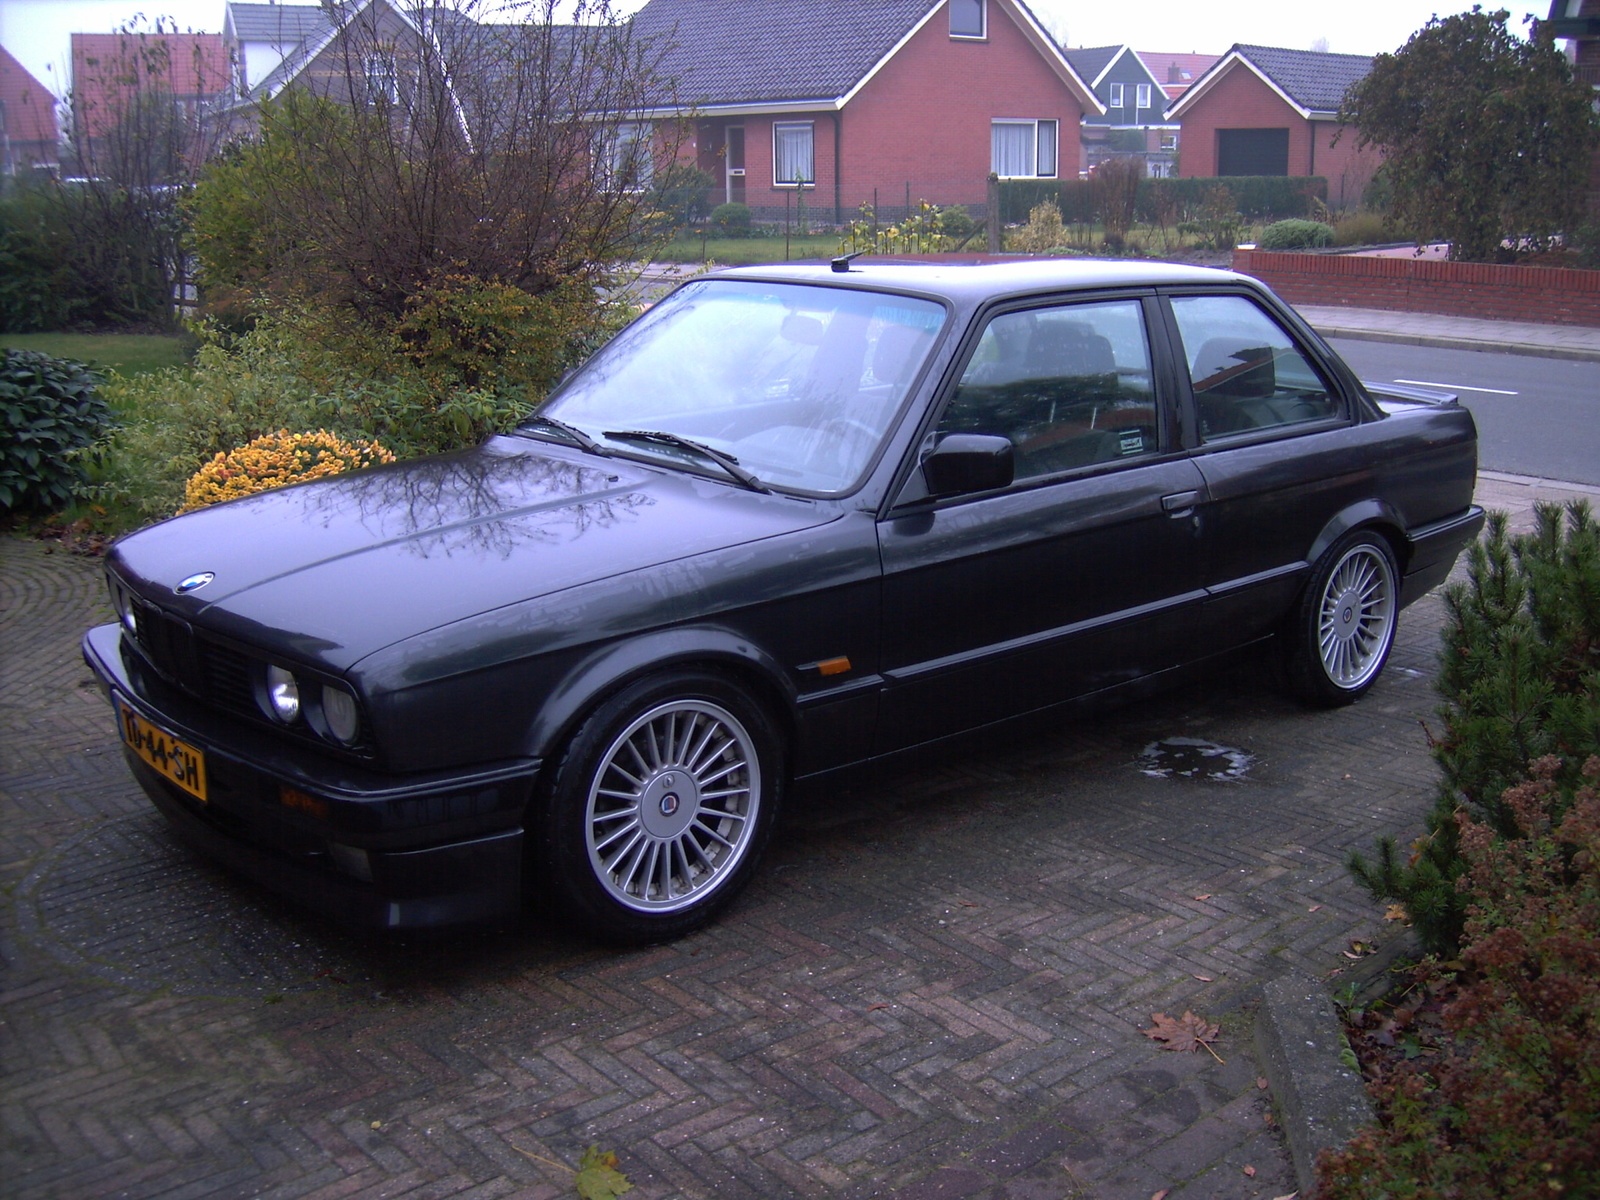 BMW 3 series 325i 1988 photo - 10